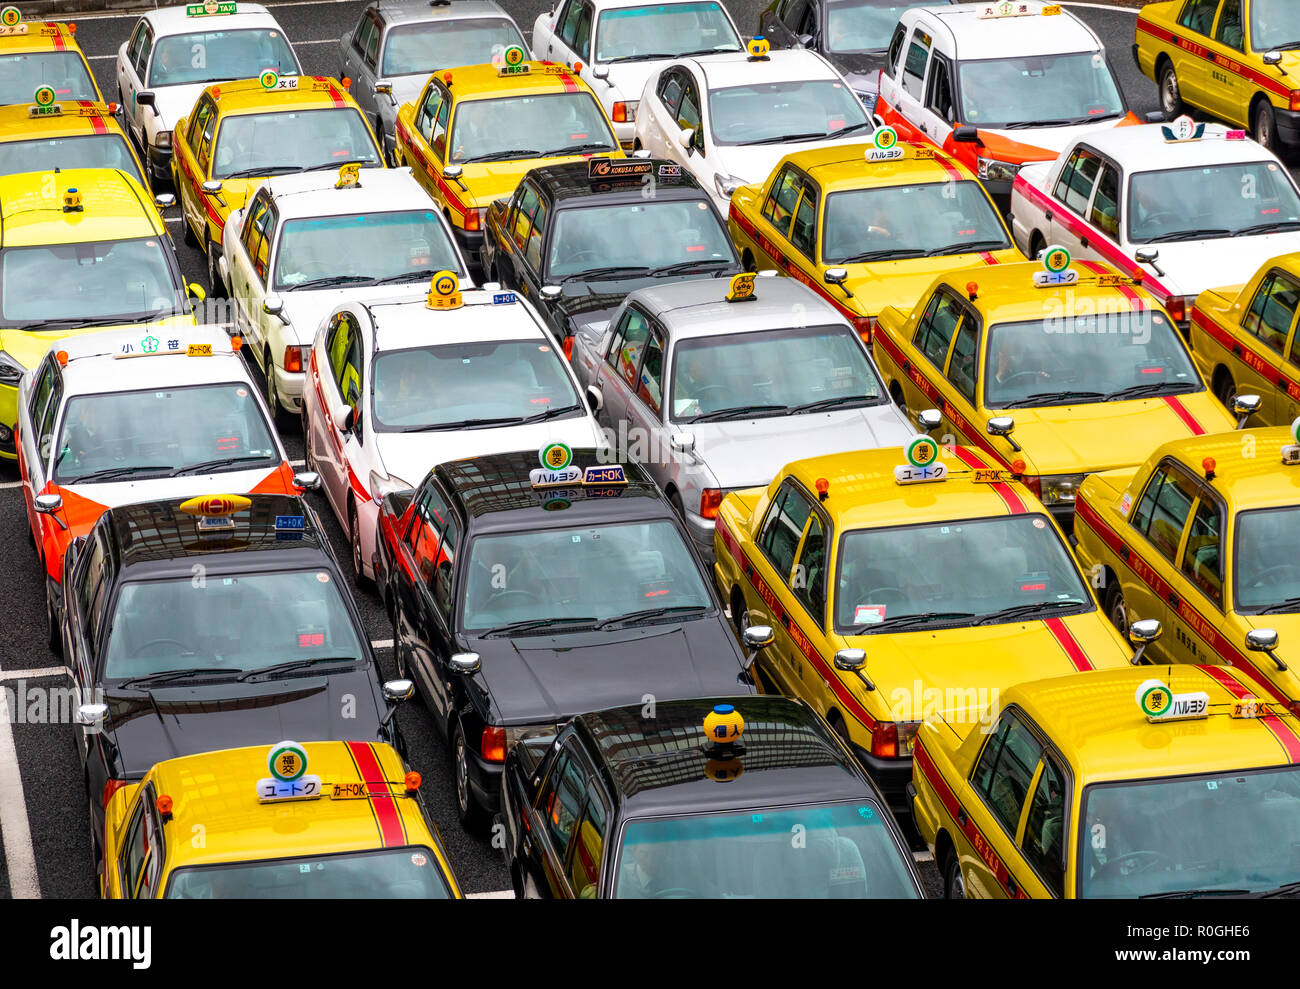 https://c7.alamy.com/comp/R0GHE6/japanese-taxis-in-front-of-fukuoka-hakata-station-waiting-for-passengers-R0GHE6.jpg